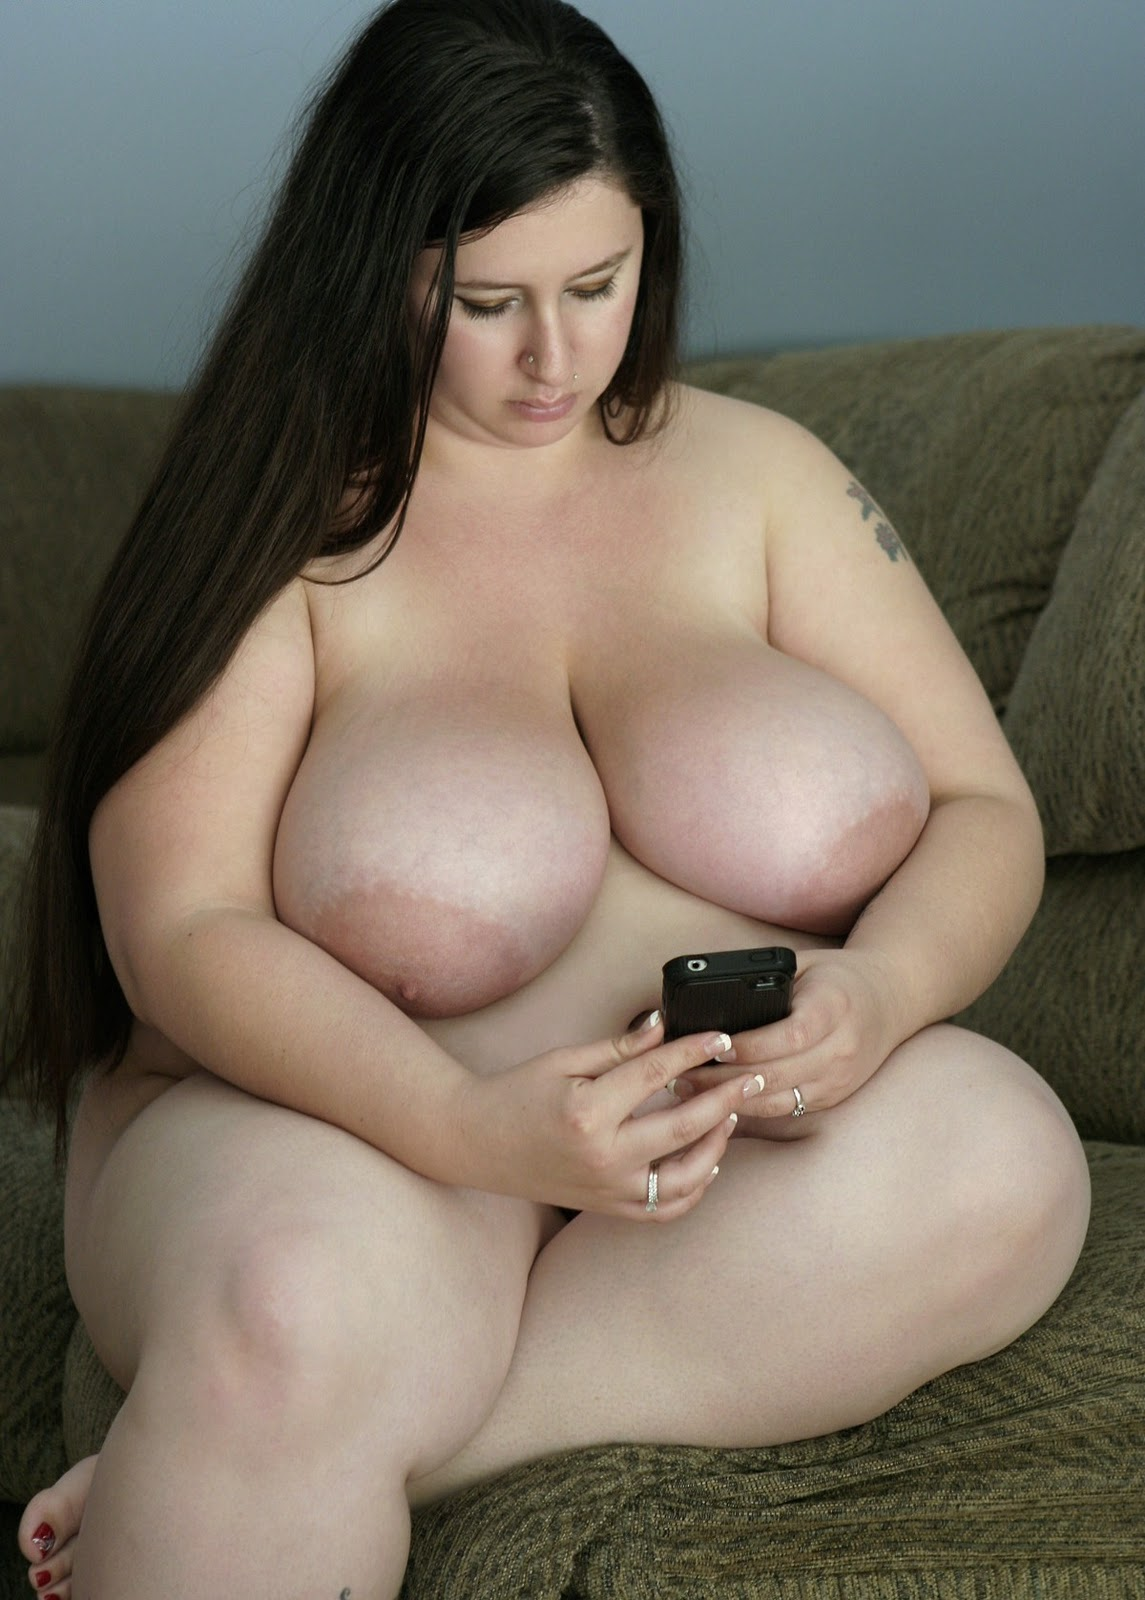 Opinion chubby beautiful bbw nudes